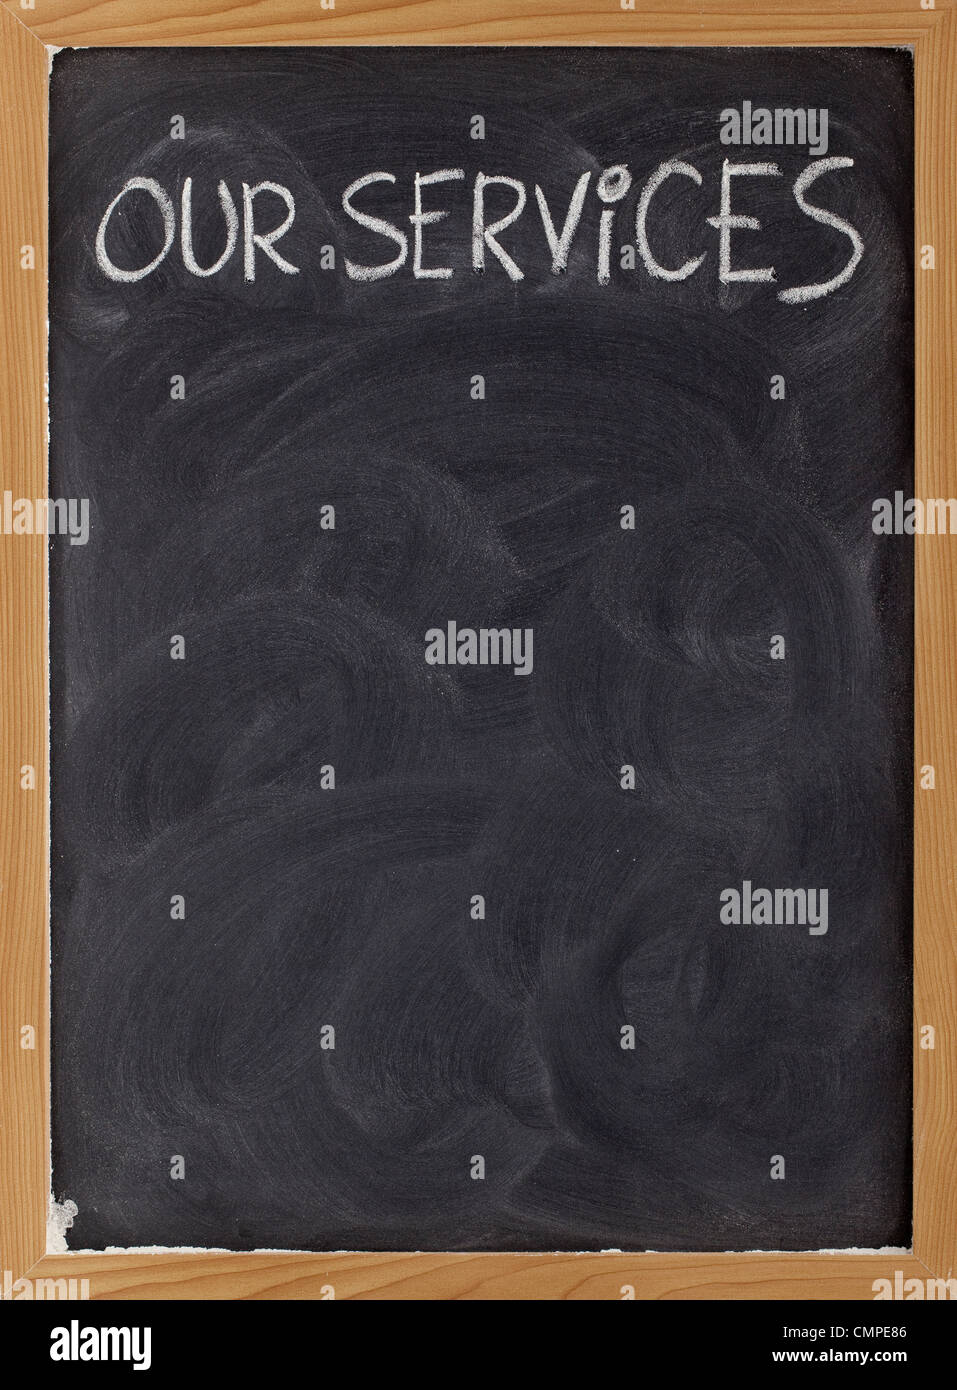 our services - white chalk handwriting on blackboard with eraser smudges, copy space below - Stock Image